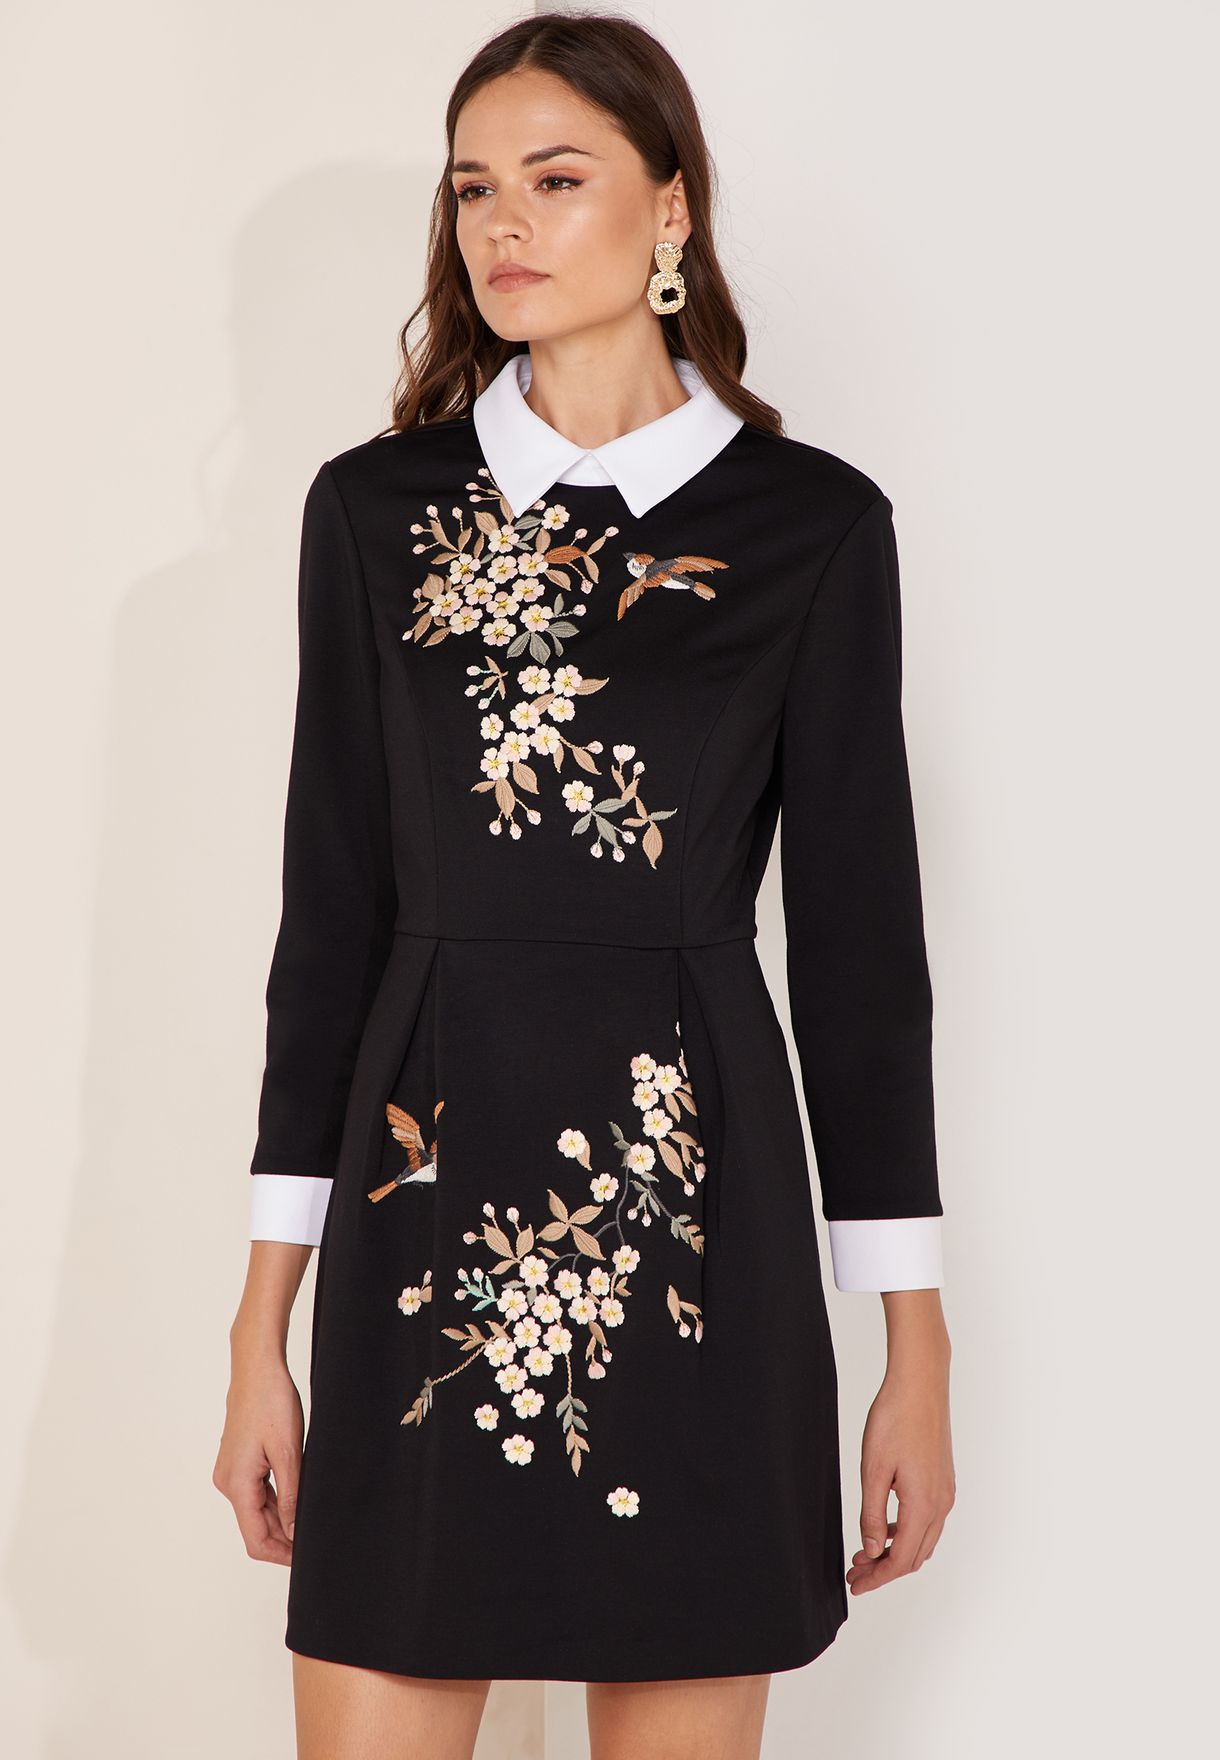 ce0769aaea1 Shop Ted baker black Graceful An Faux Fur Collar Embroidered Dress ...